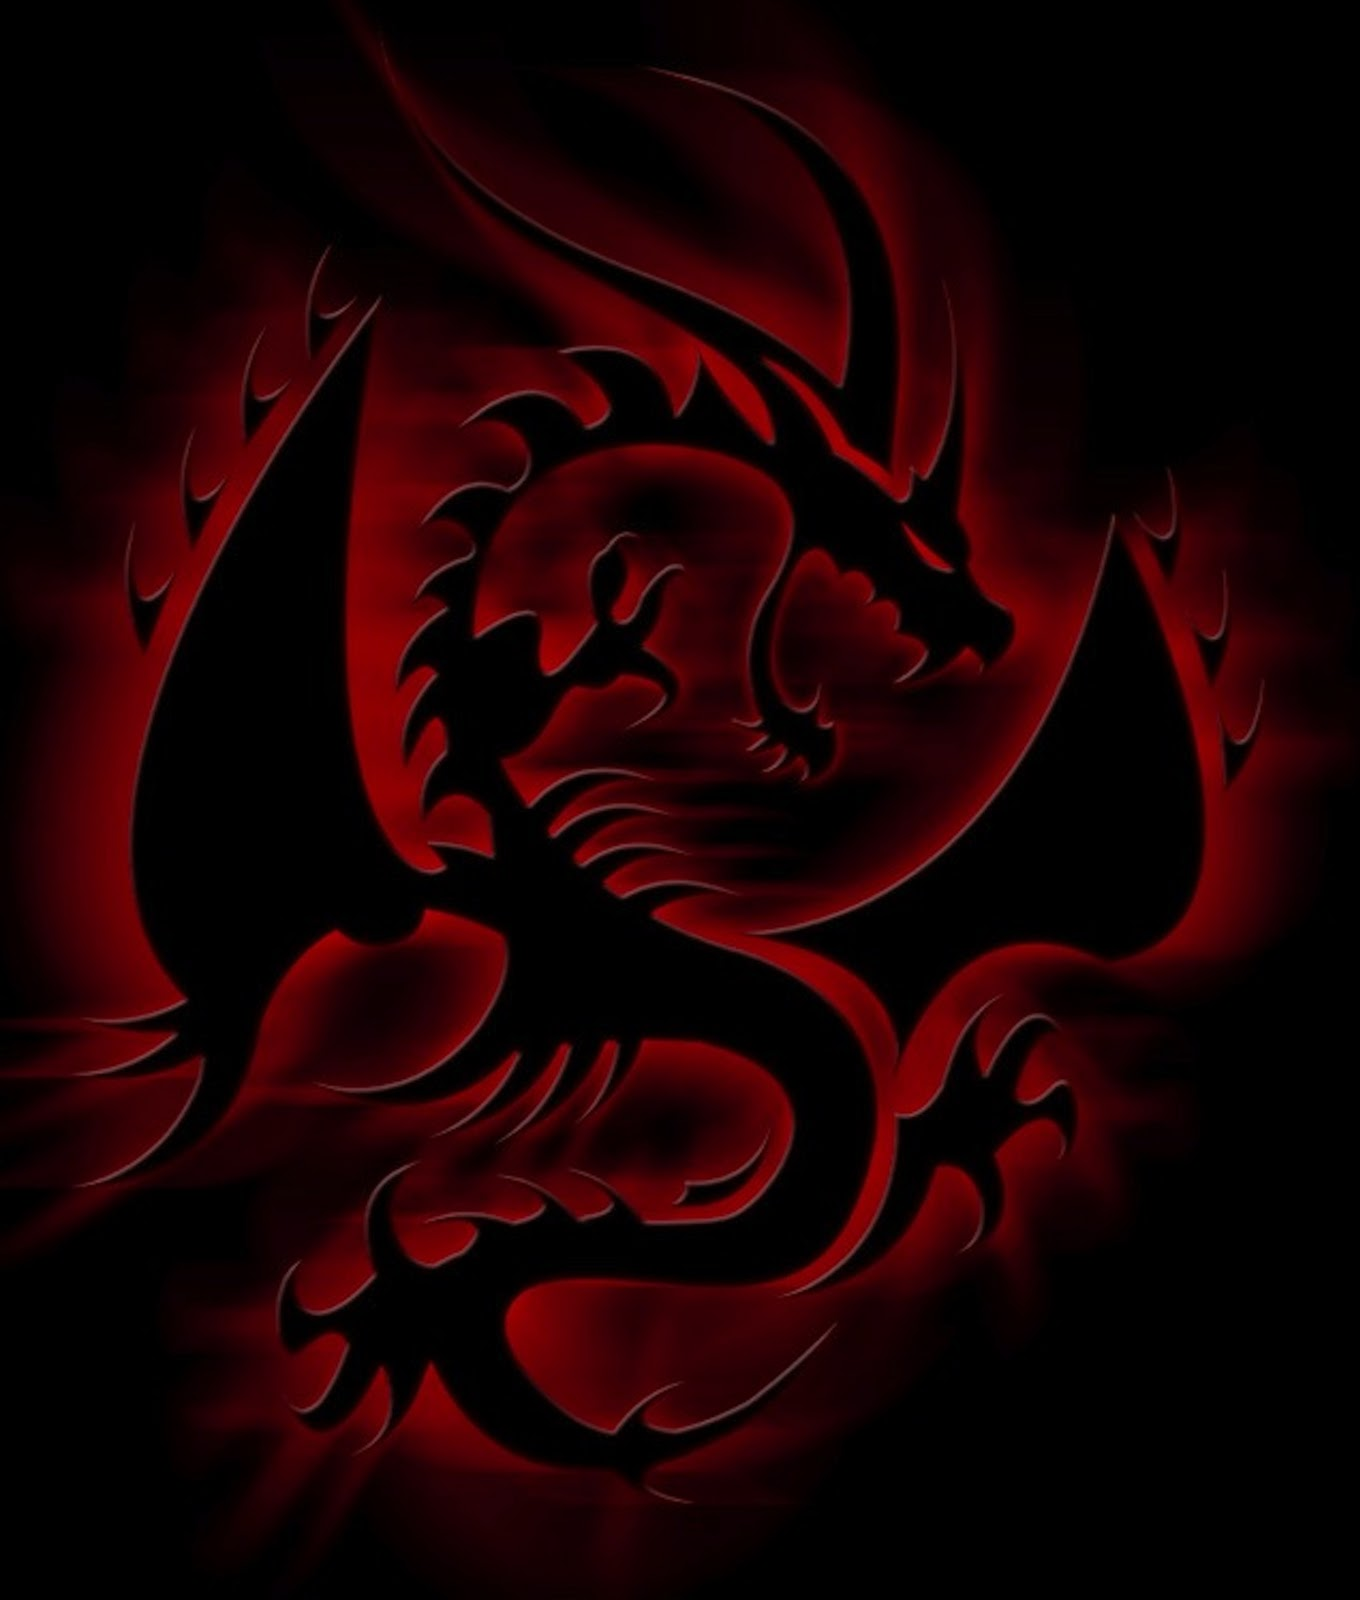 Free Download Red Eyes Black Dragon Wallpaper 1360x1600 For Your